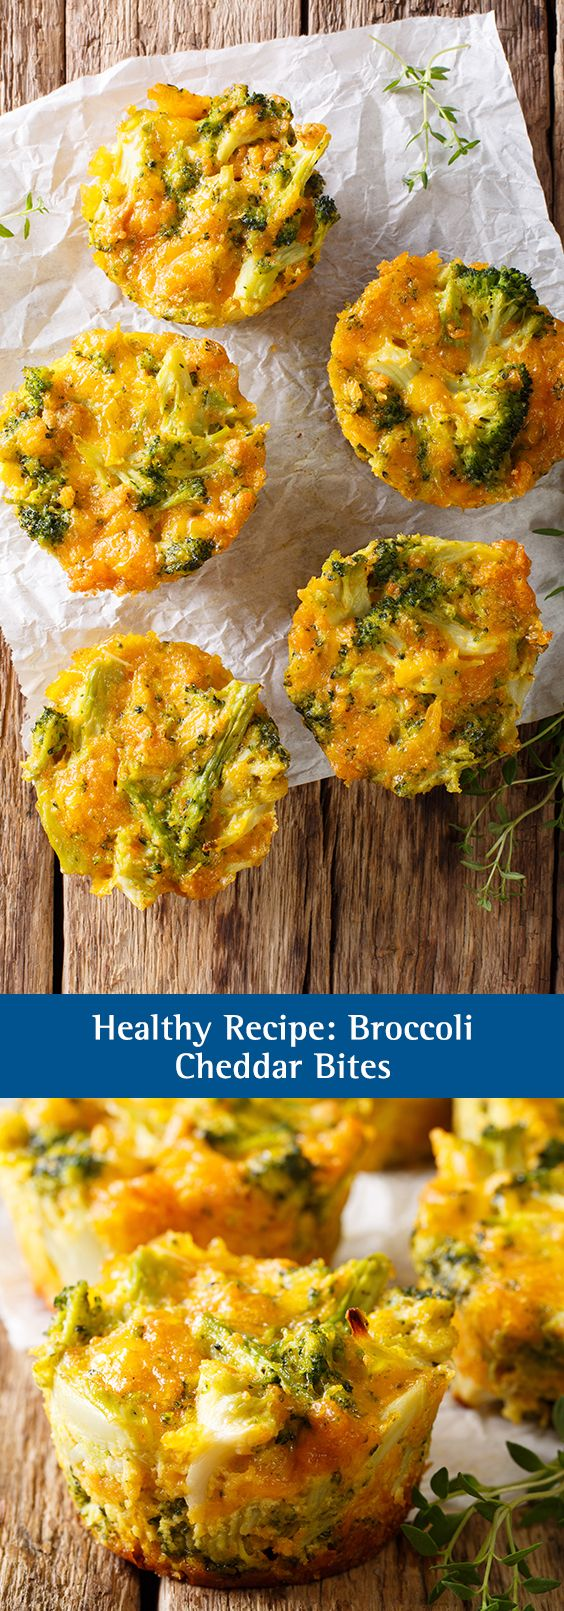 Healthy Recipe: Broccoli Cheddar Bites. These mini bites are the perfect snack for kids who need a little help getting their servings of veggies each day. A great recipe to make as a family! These bites are so cheesy and delicious, you'll forget that they're good for you!